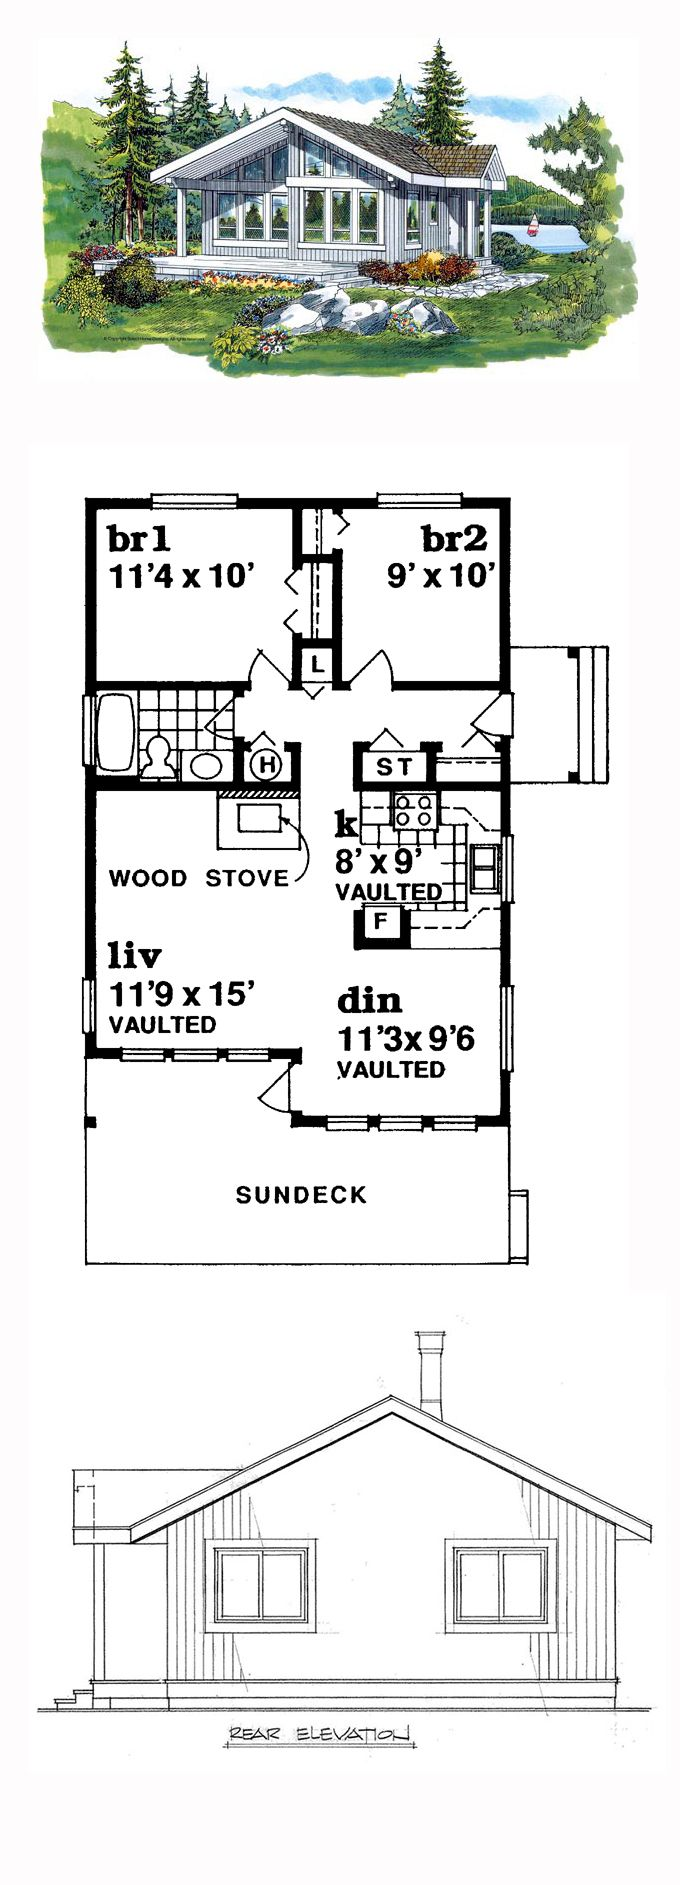 Contemporary House Plan 55328 | Total Living Area: 817 sq. ft., 2 bedrooms and 1 bathroom. #contemporaryhome